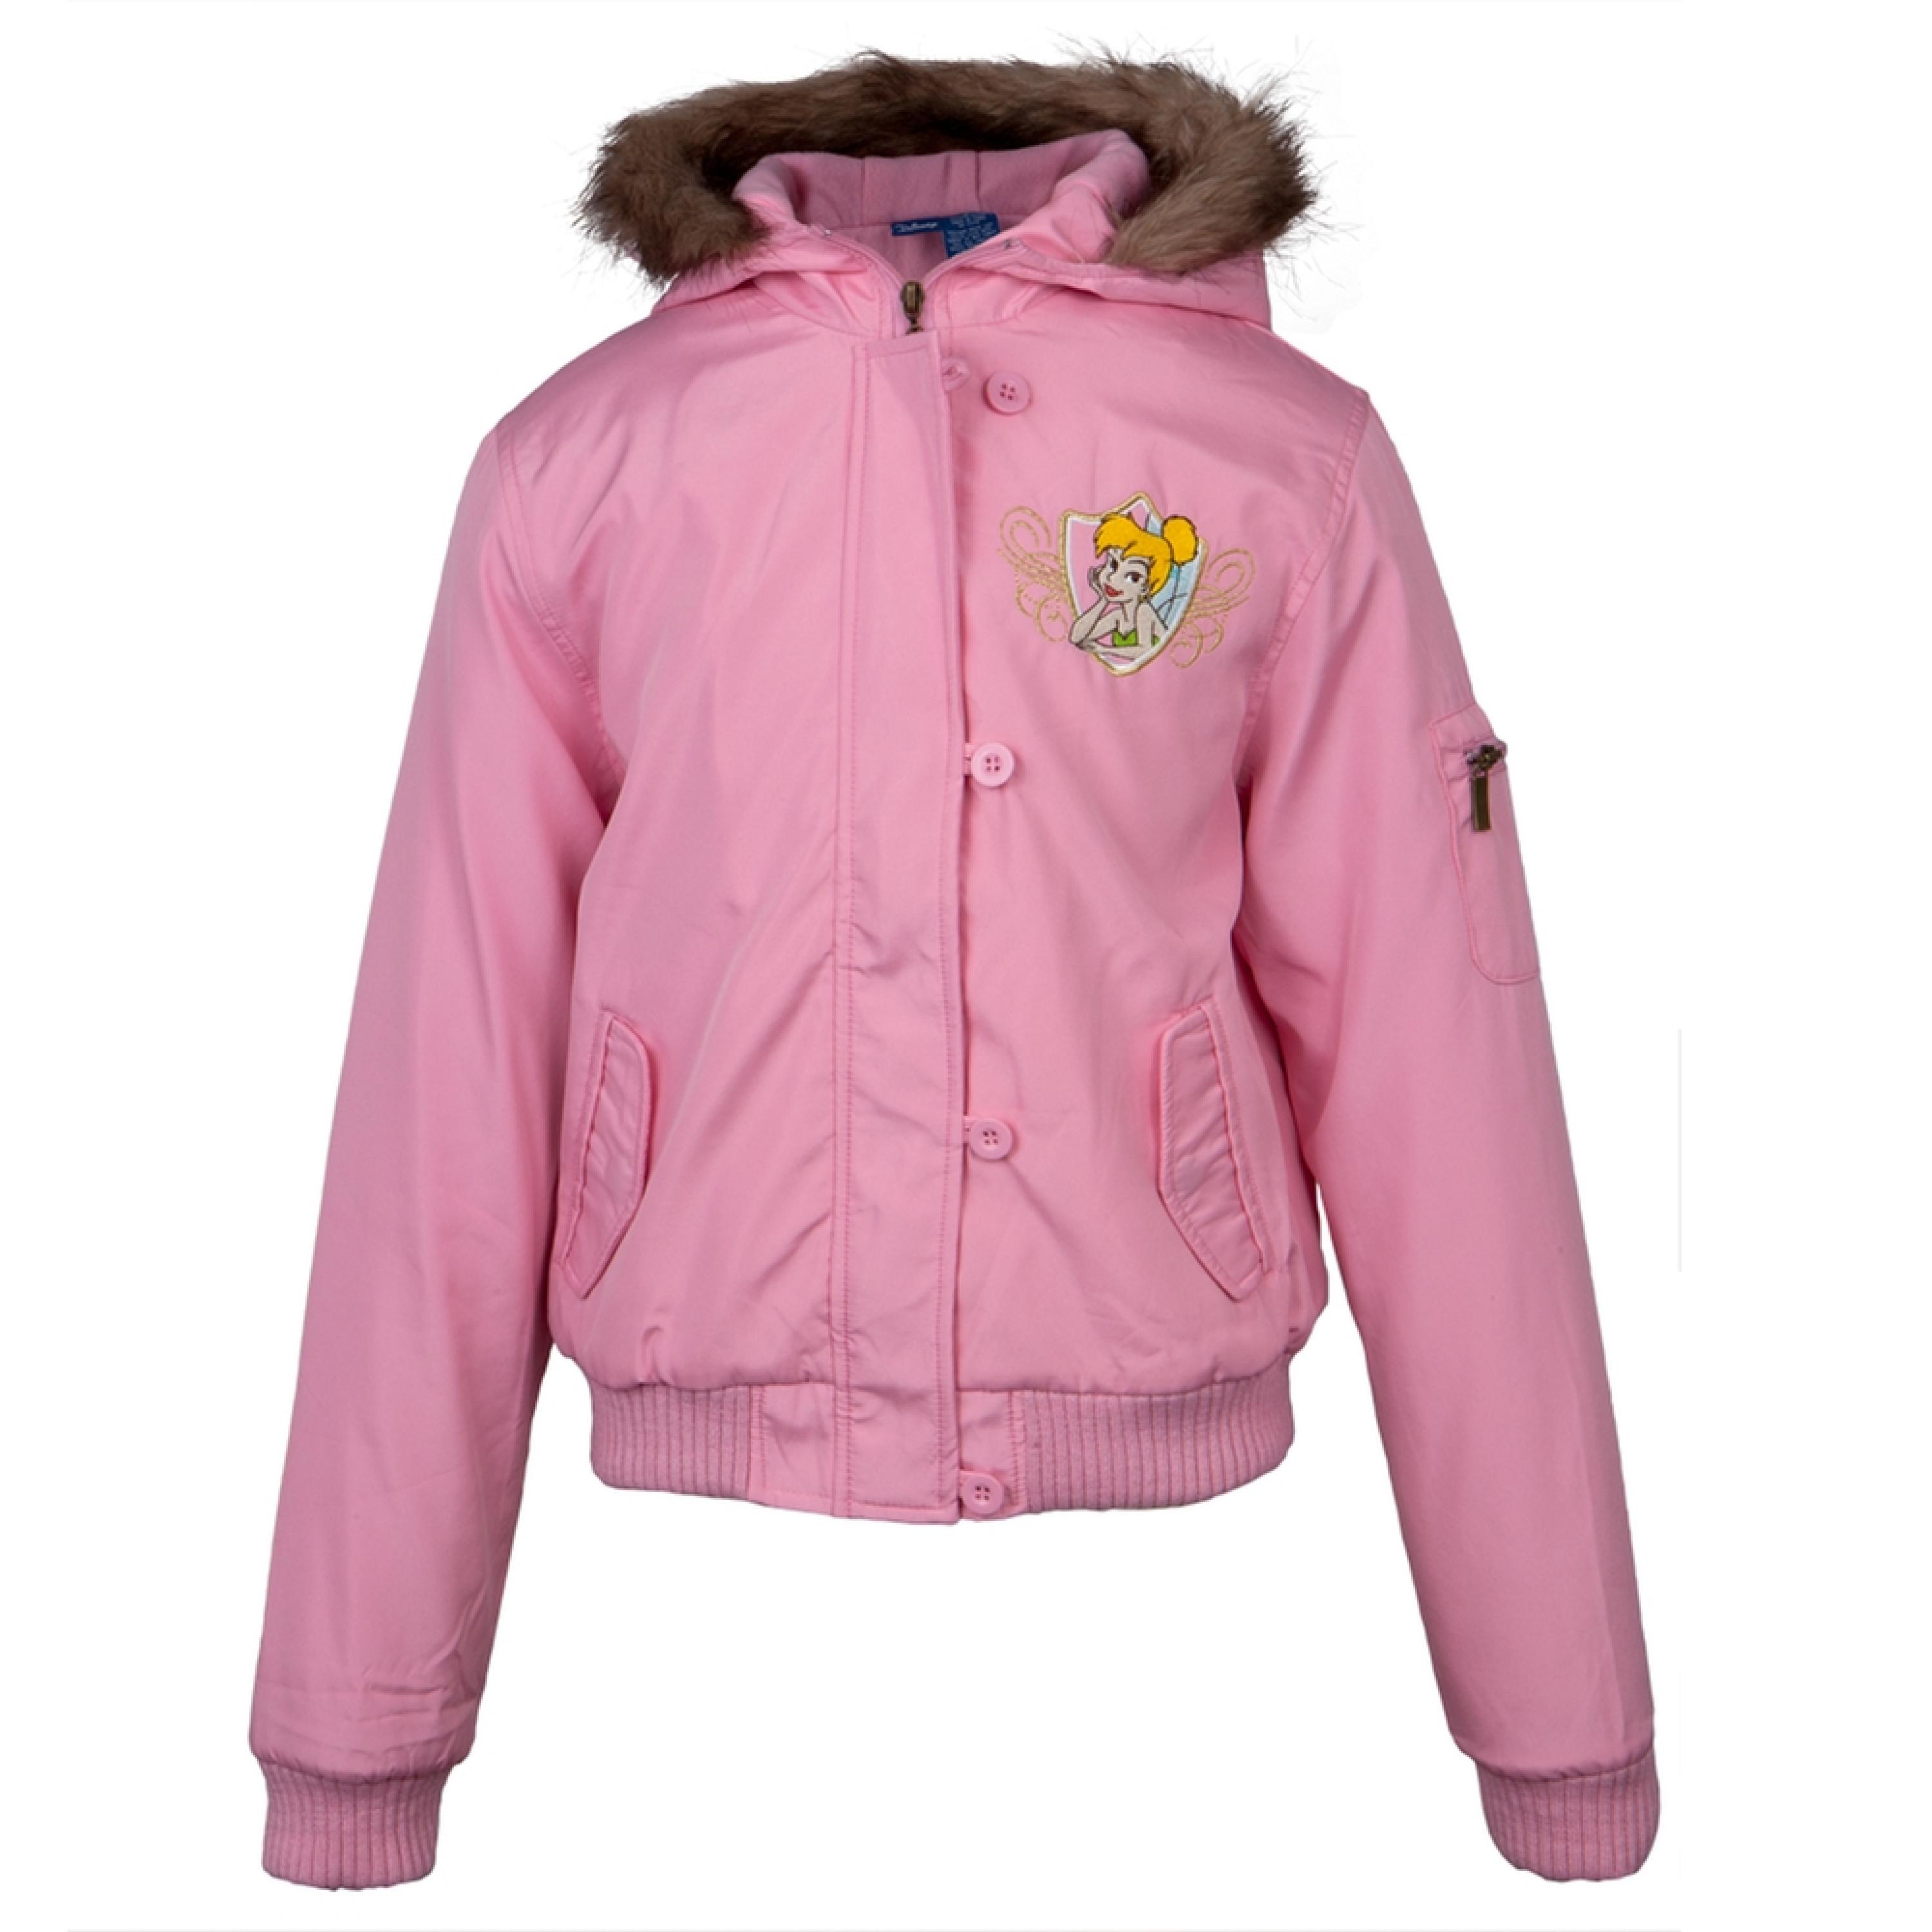 Tinkerbell - Cute Crest Juniors Jacket